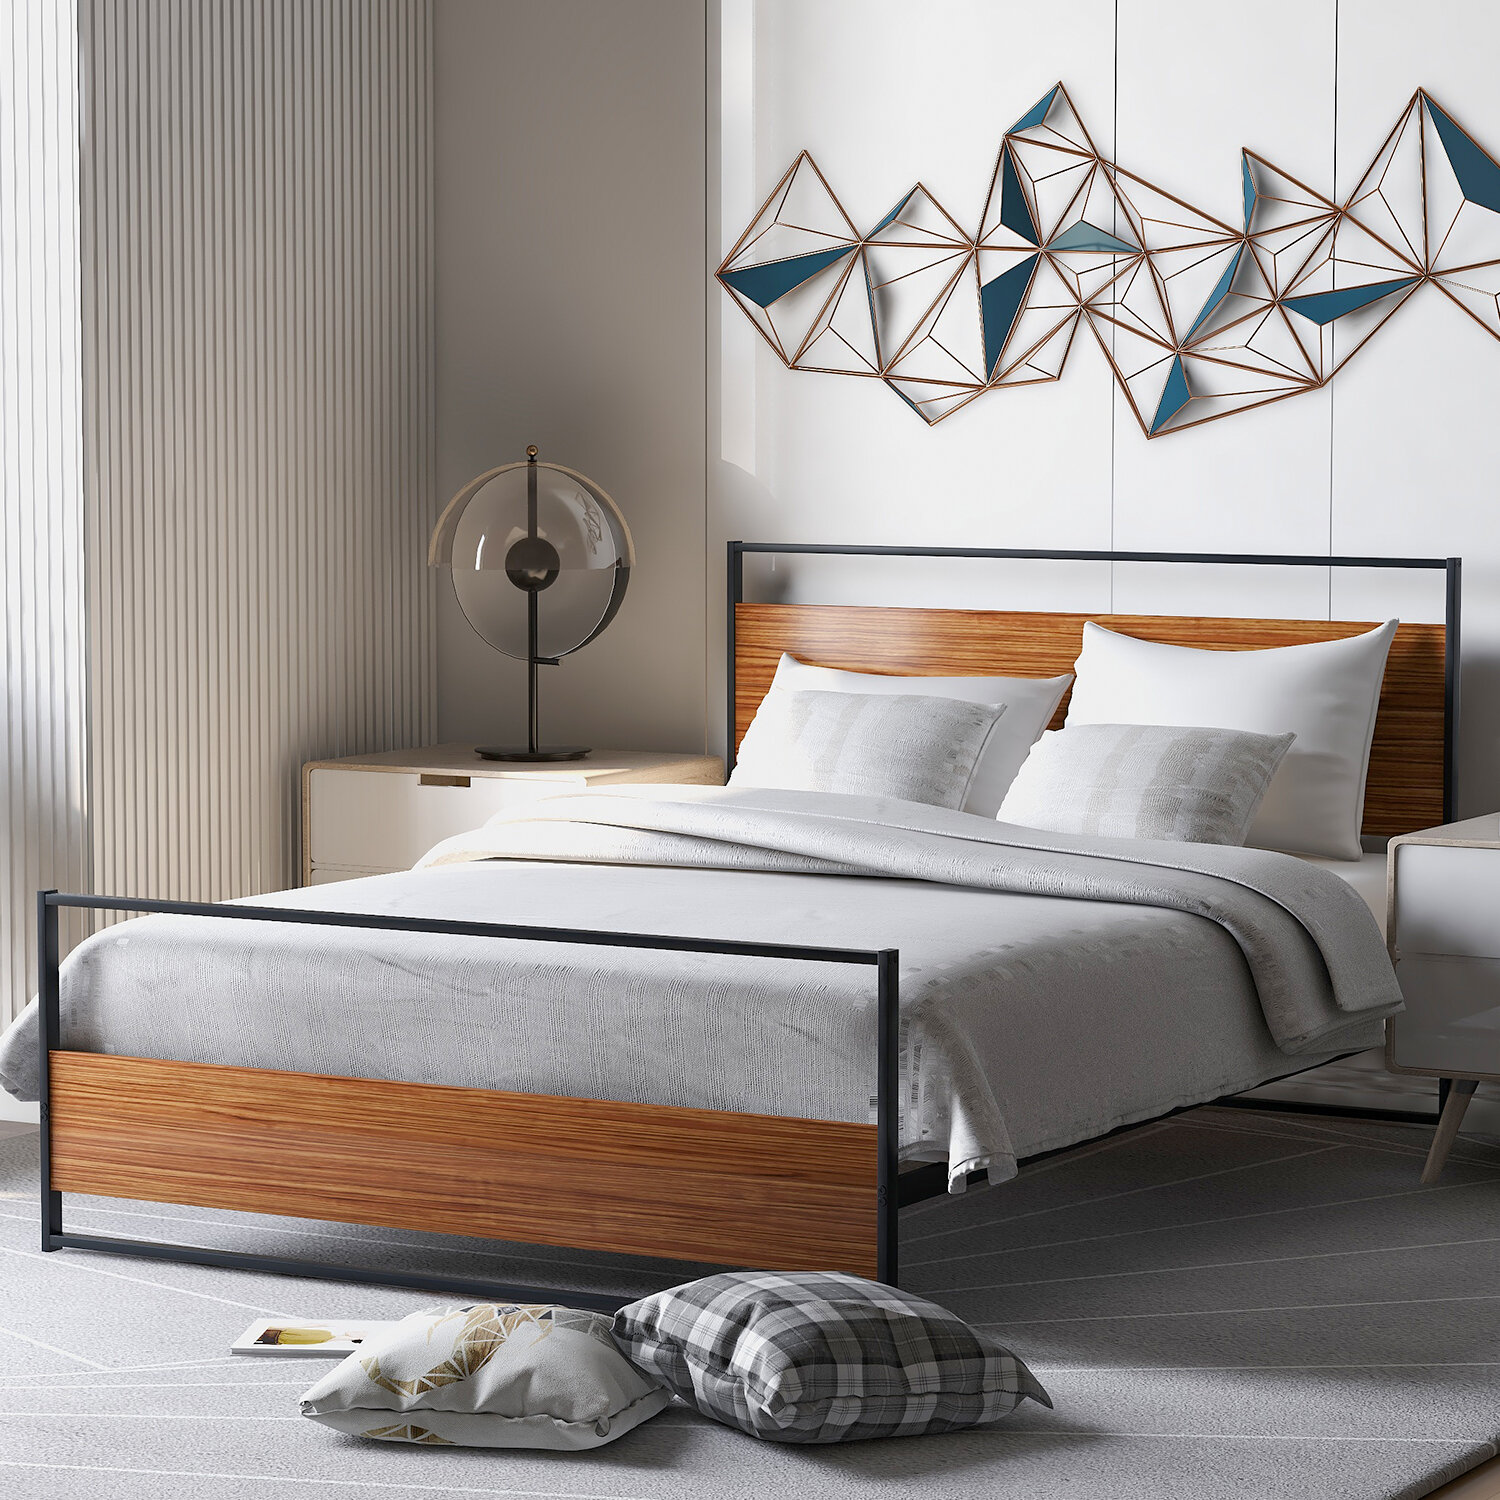 Picture of: Latitude Run Full Size Metal And Wood Platform Bed Frame With Headboard And Footboard And Wooden Slat Support No Box Spring Needed For Bedroom Wayfair Ca